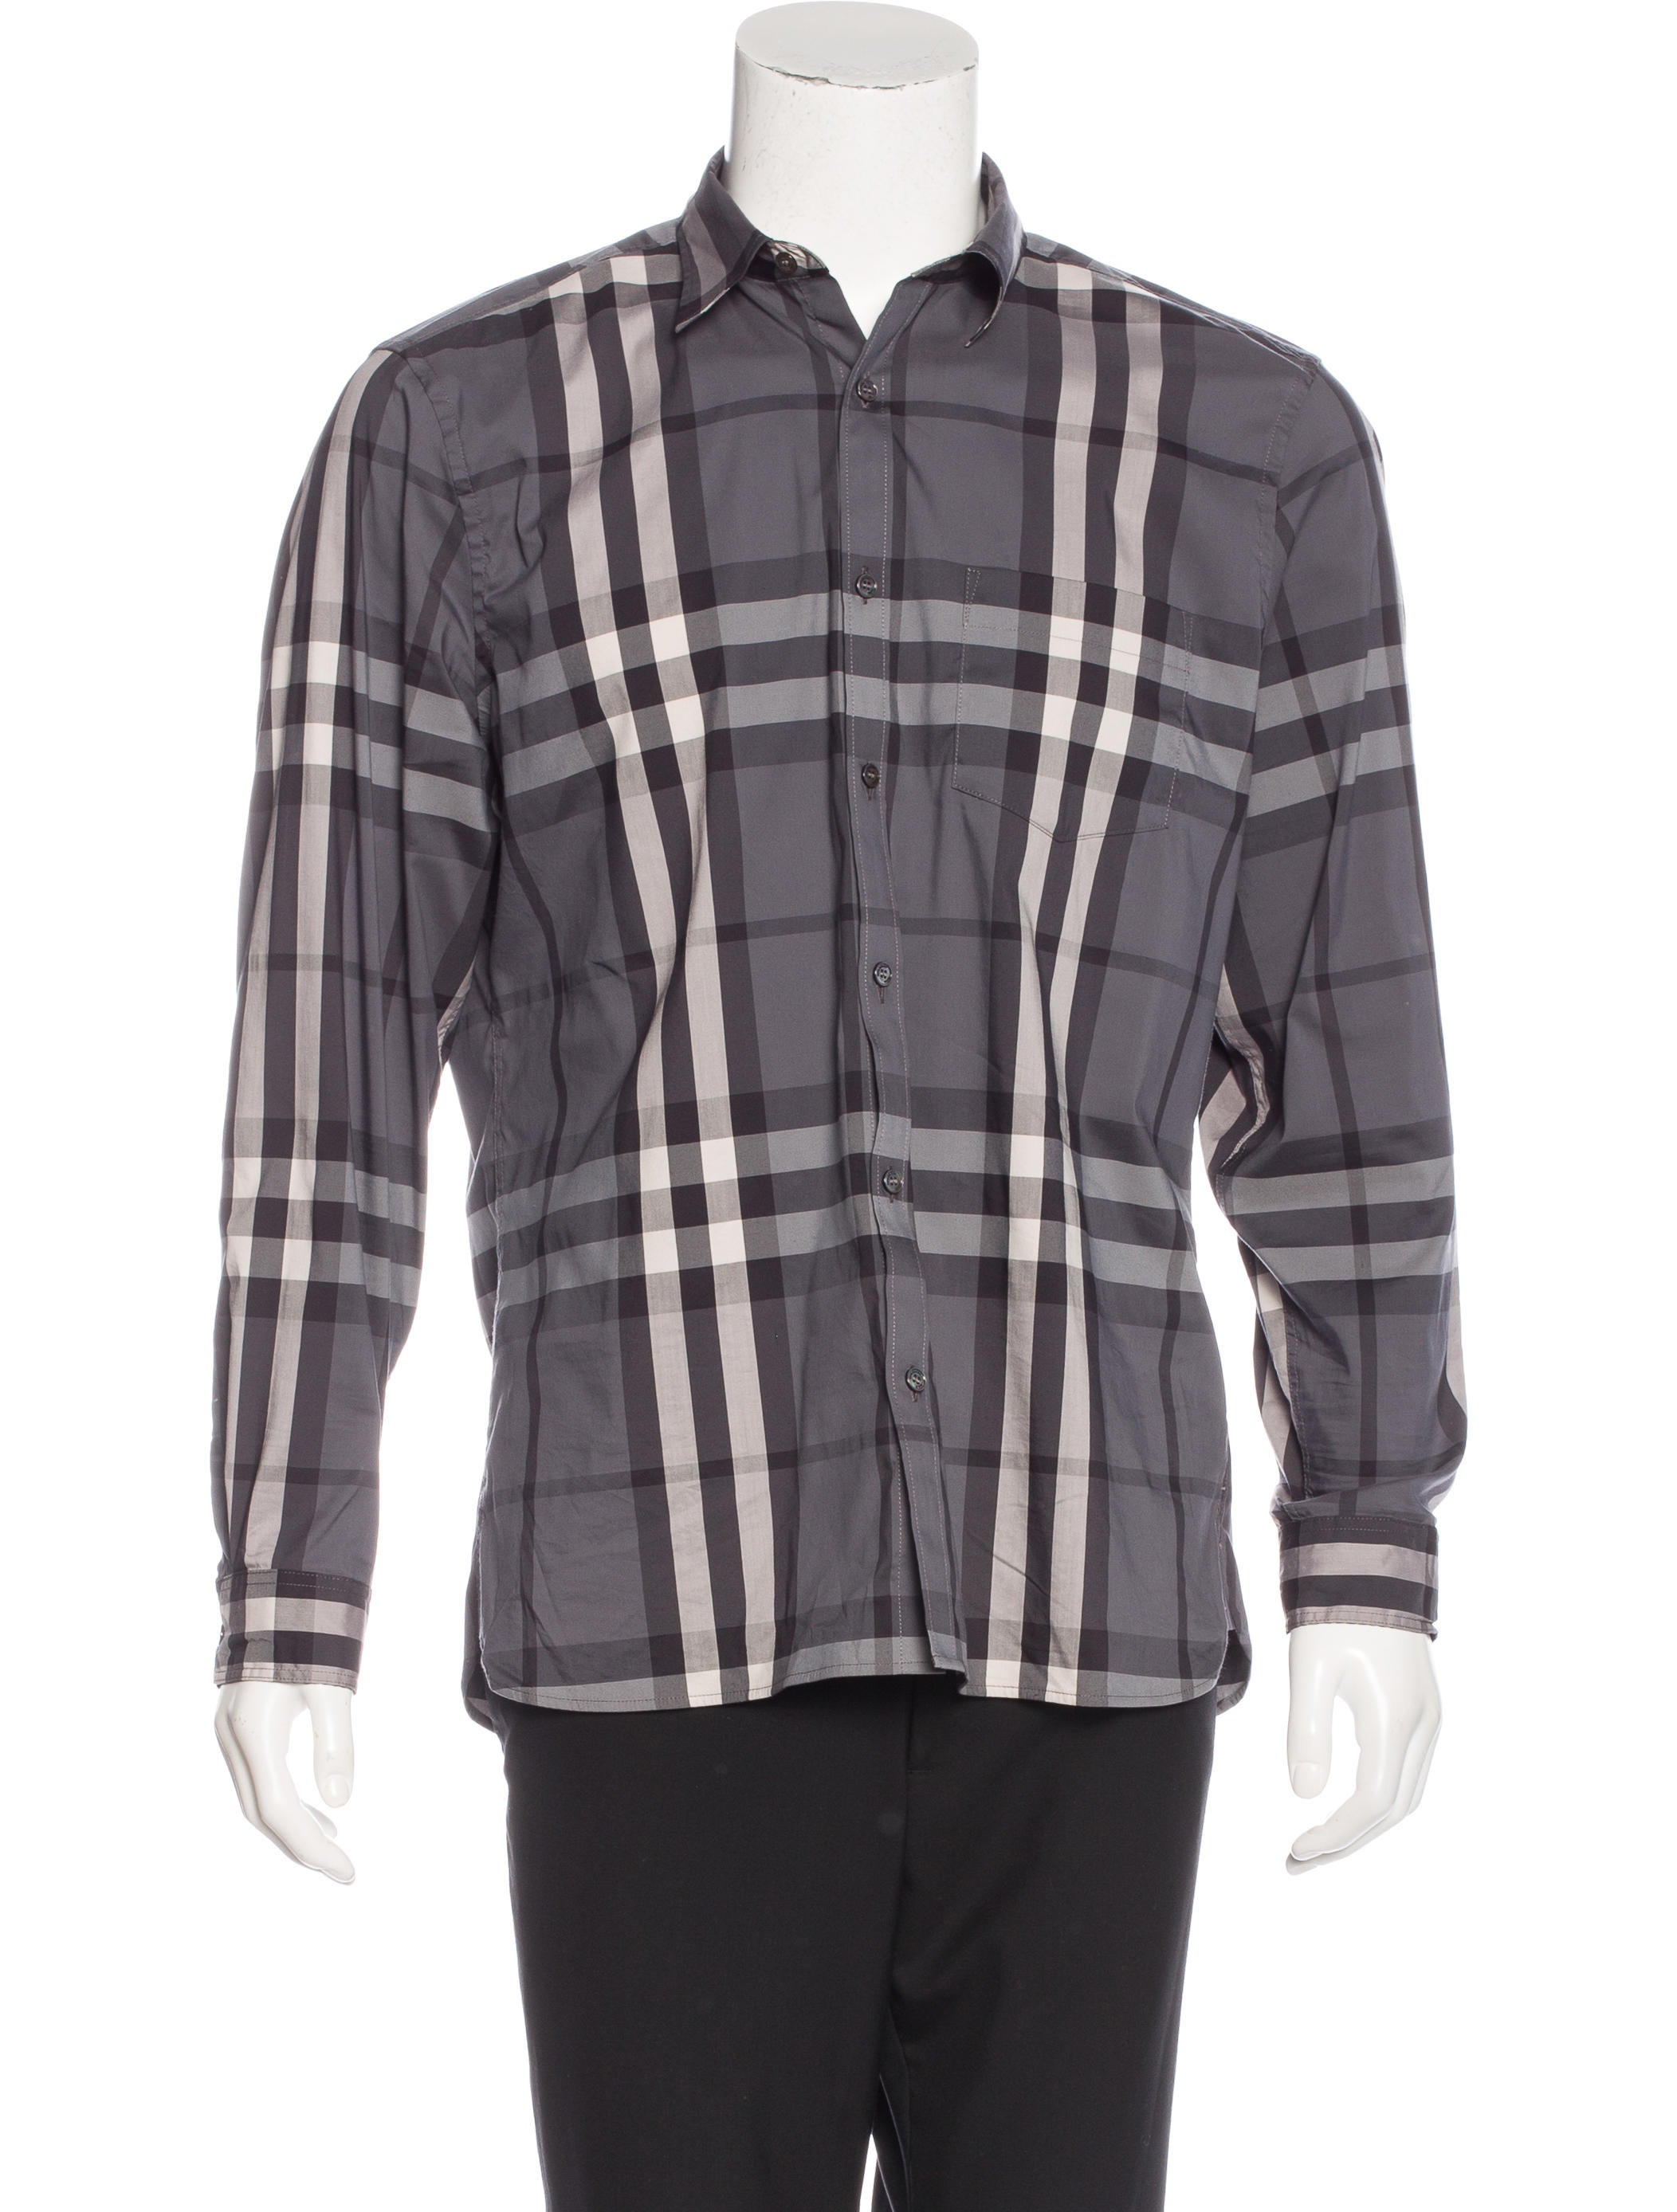 Burberry brit plaid woven shirt clothing bbr27133 for Burberry brit green plaid shirt